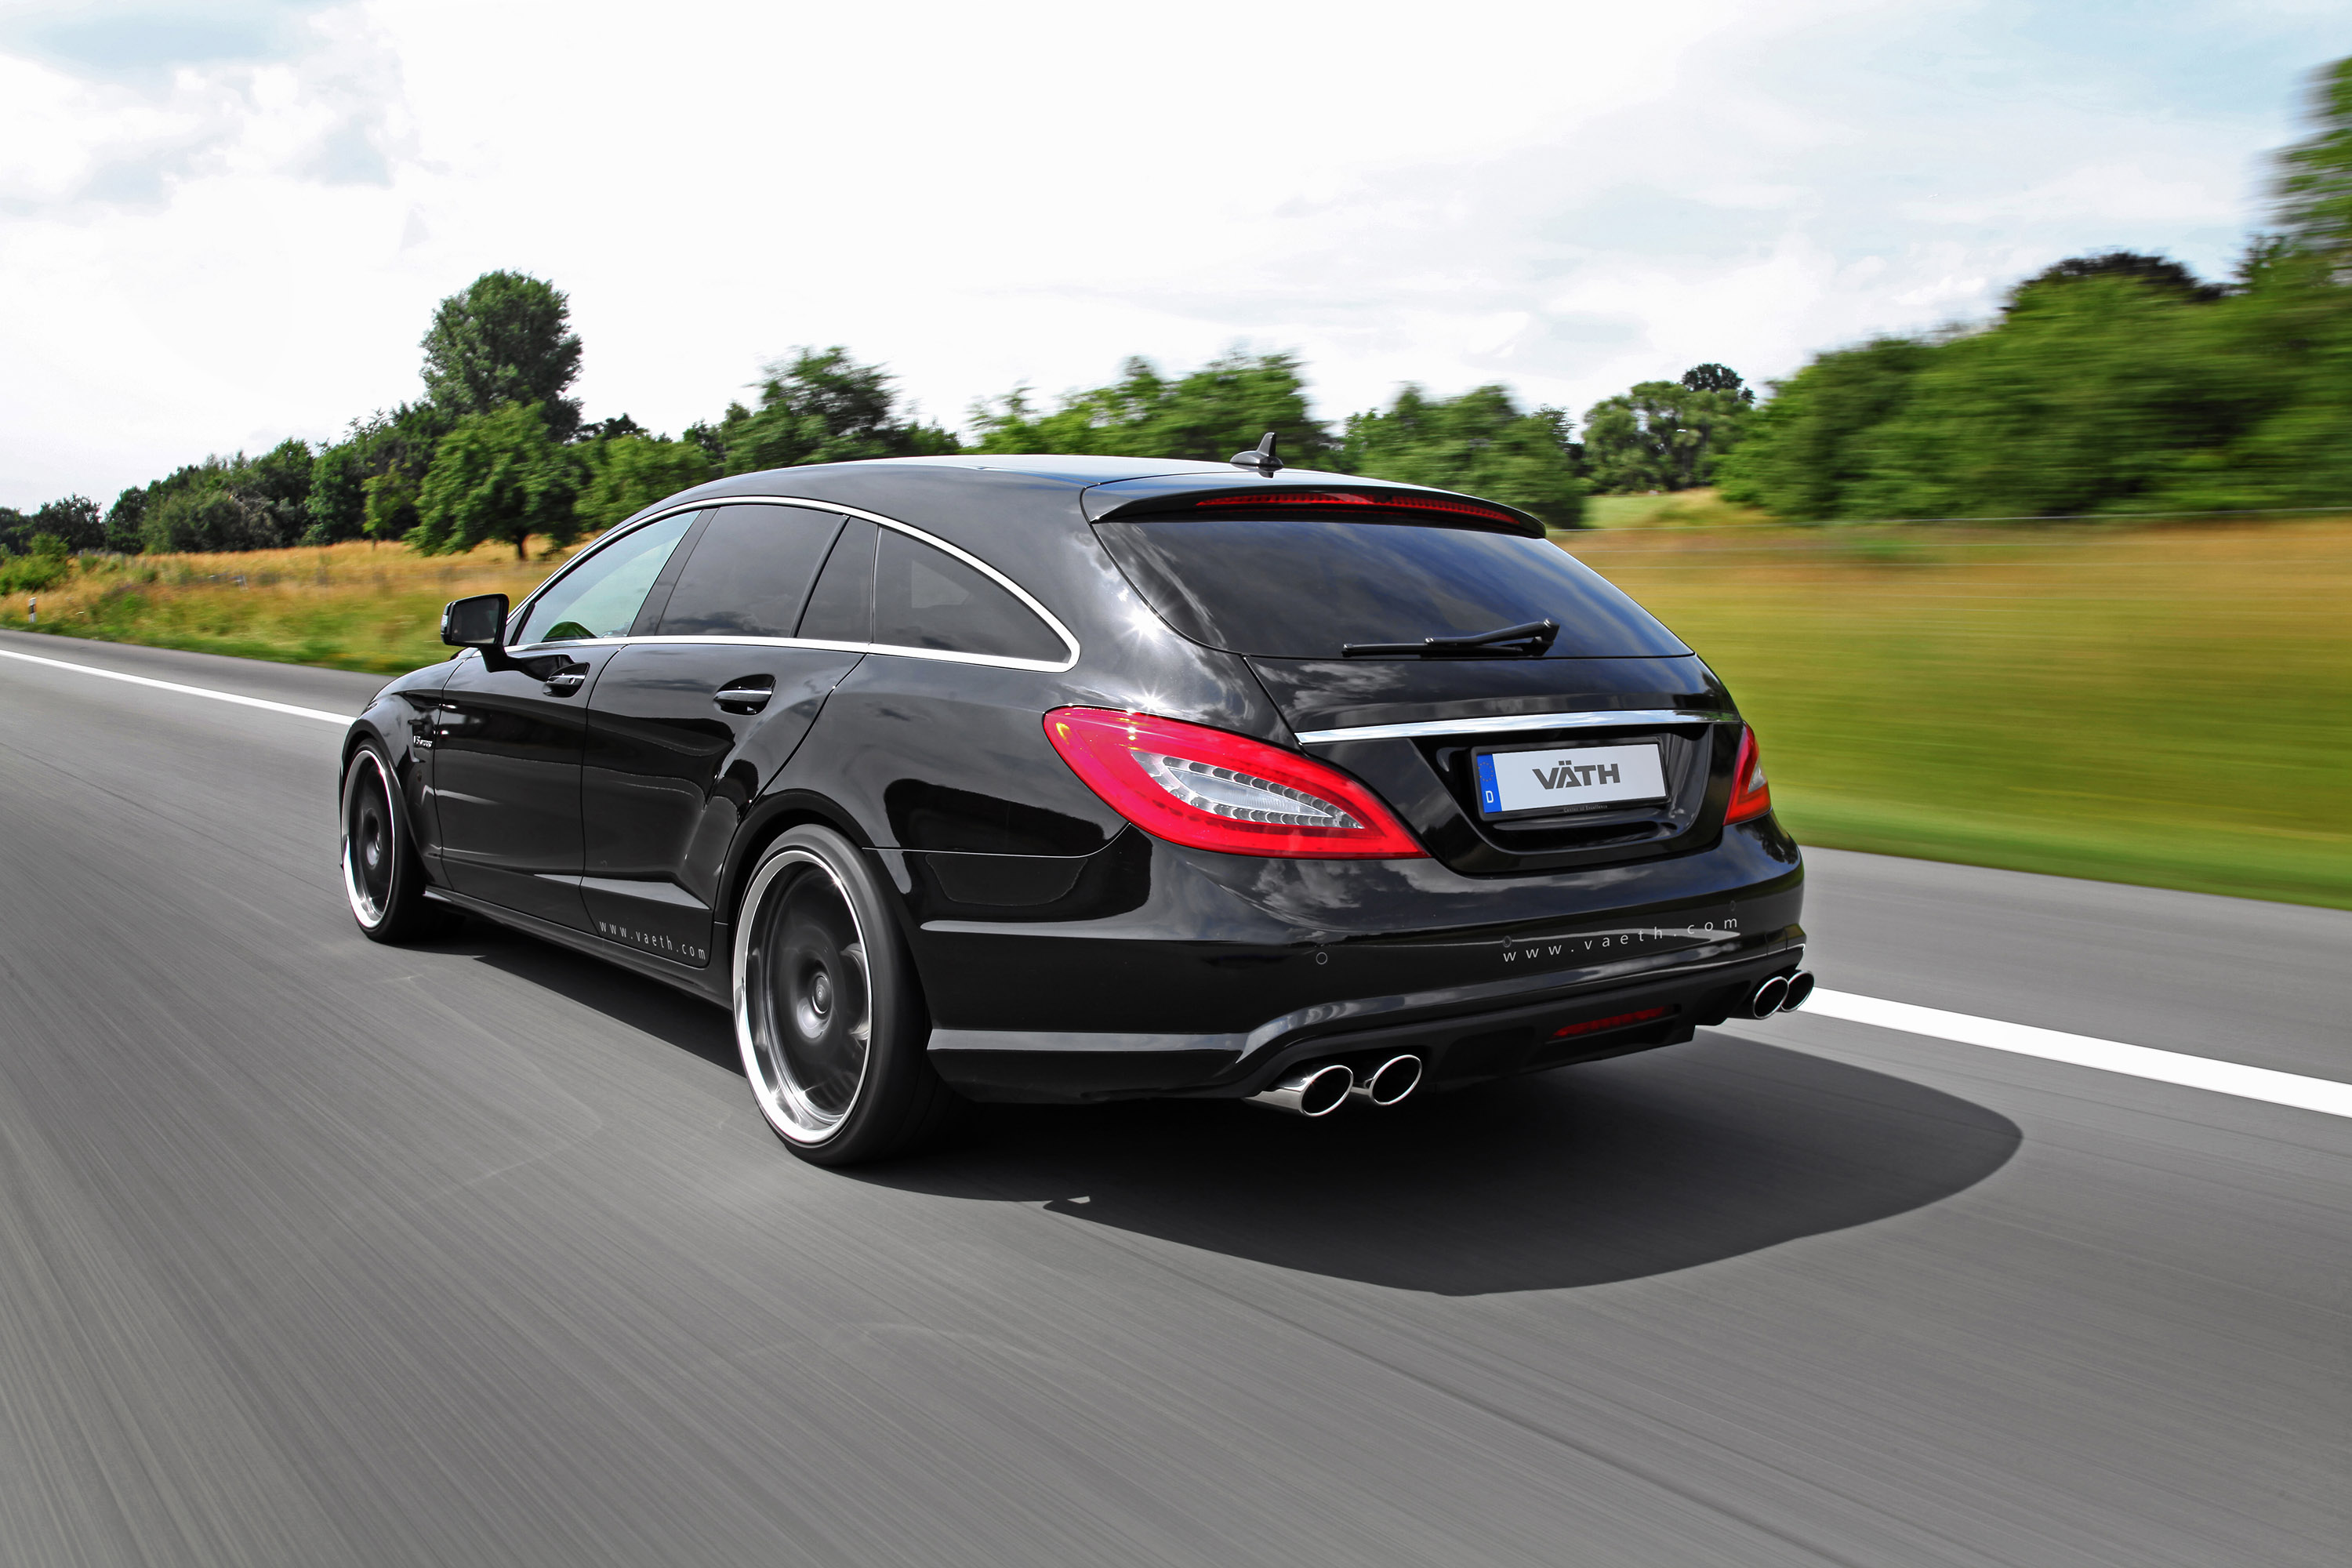 vath mercedes benz cls 63 amg shooting brake 846hp and 1. Black Bedroom Furniture Sets. Home Design Ideas